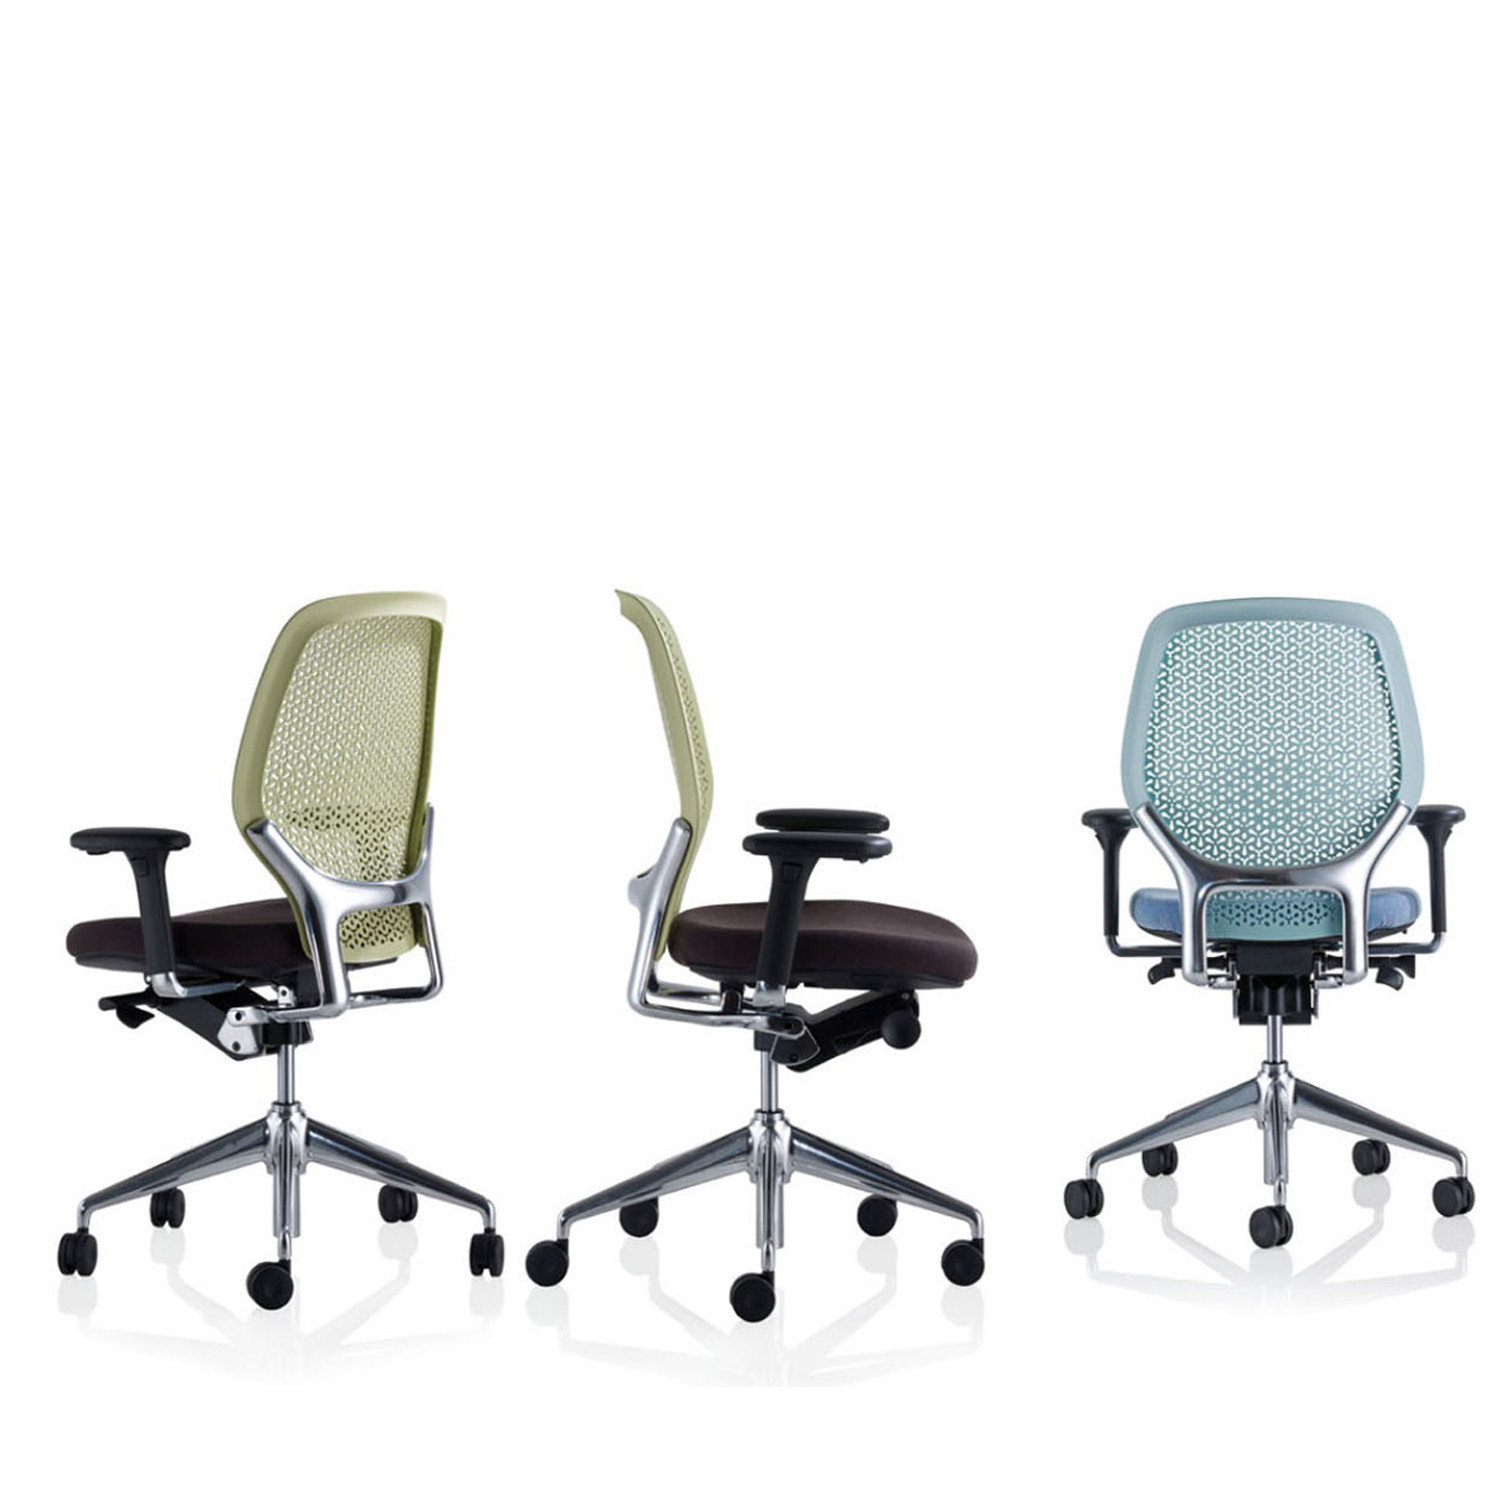 Ara Ergonomic Mesh Chairs